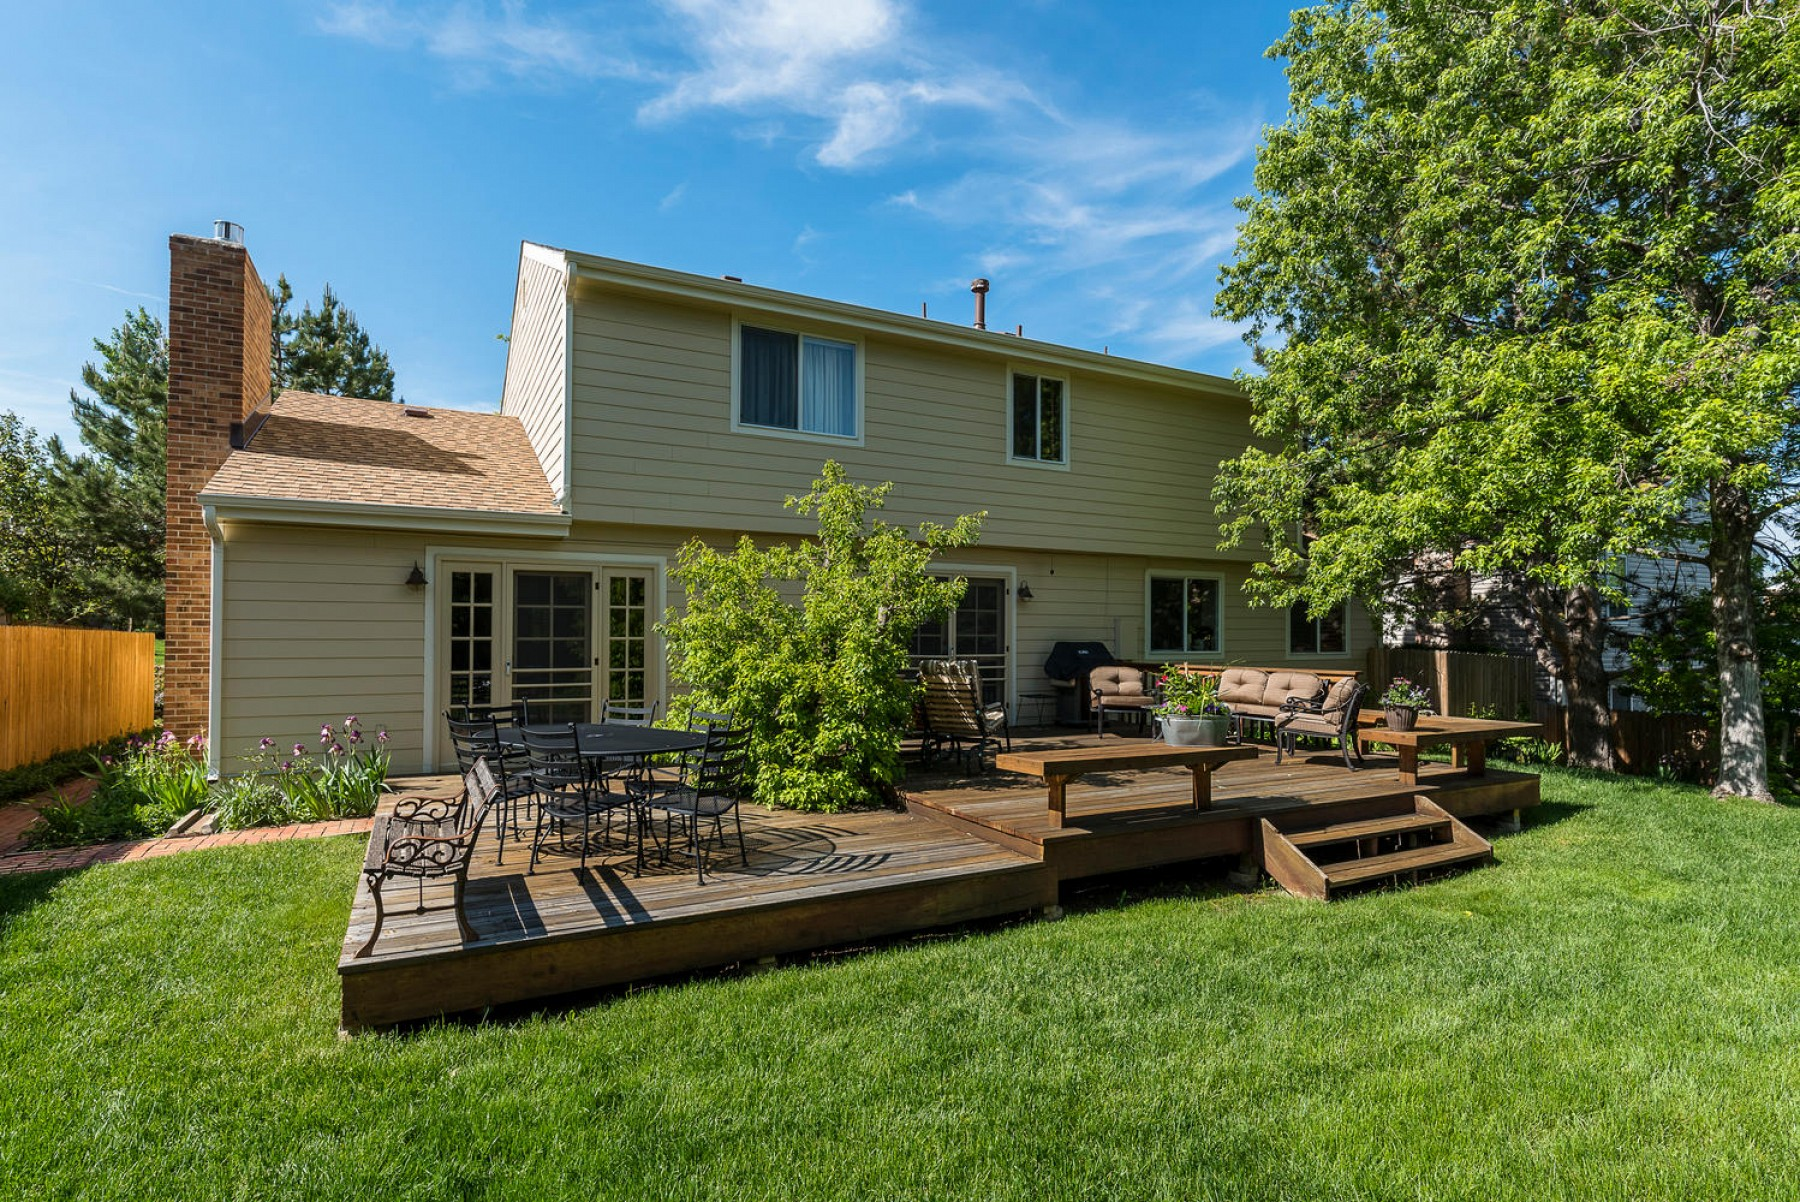 5566 S. Quintero Way, Centennial, CO 80015